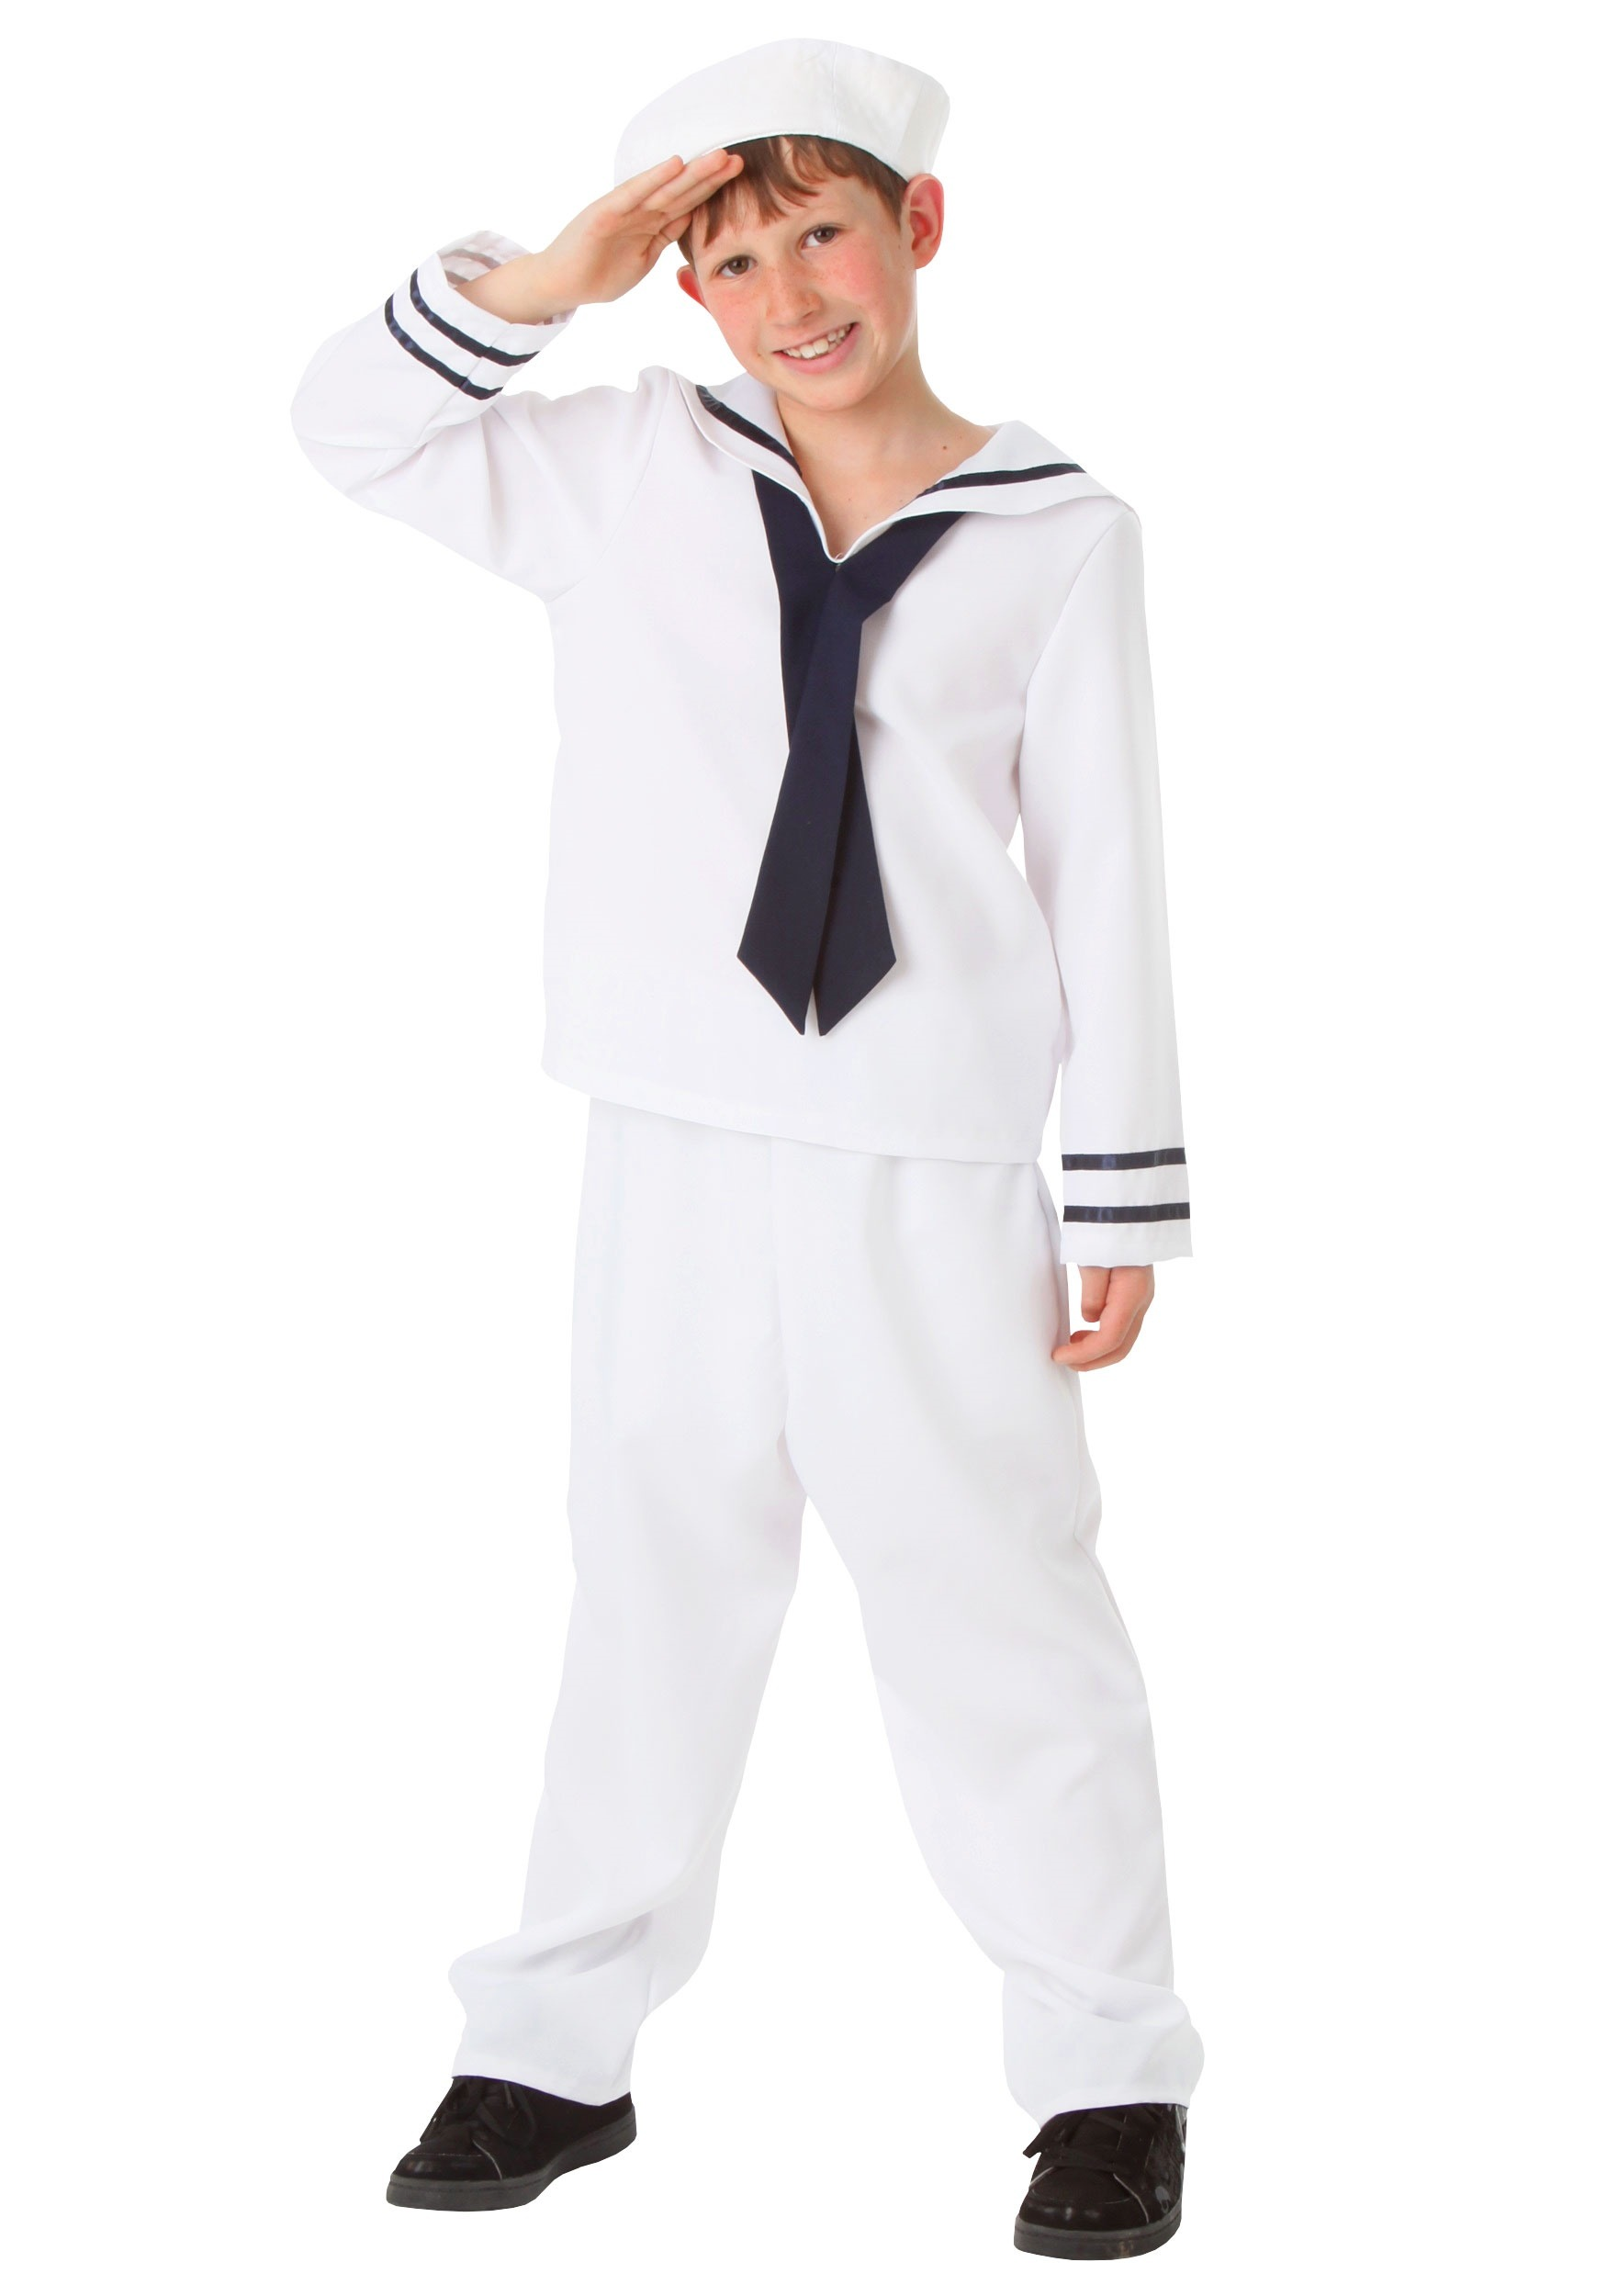 ... boys white sailor costume · pimp costumes ...  sc 1 st  Best Kids Costumes & Kids Pimp Costume - Best Kids Costumes